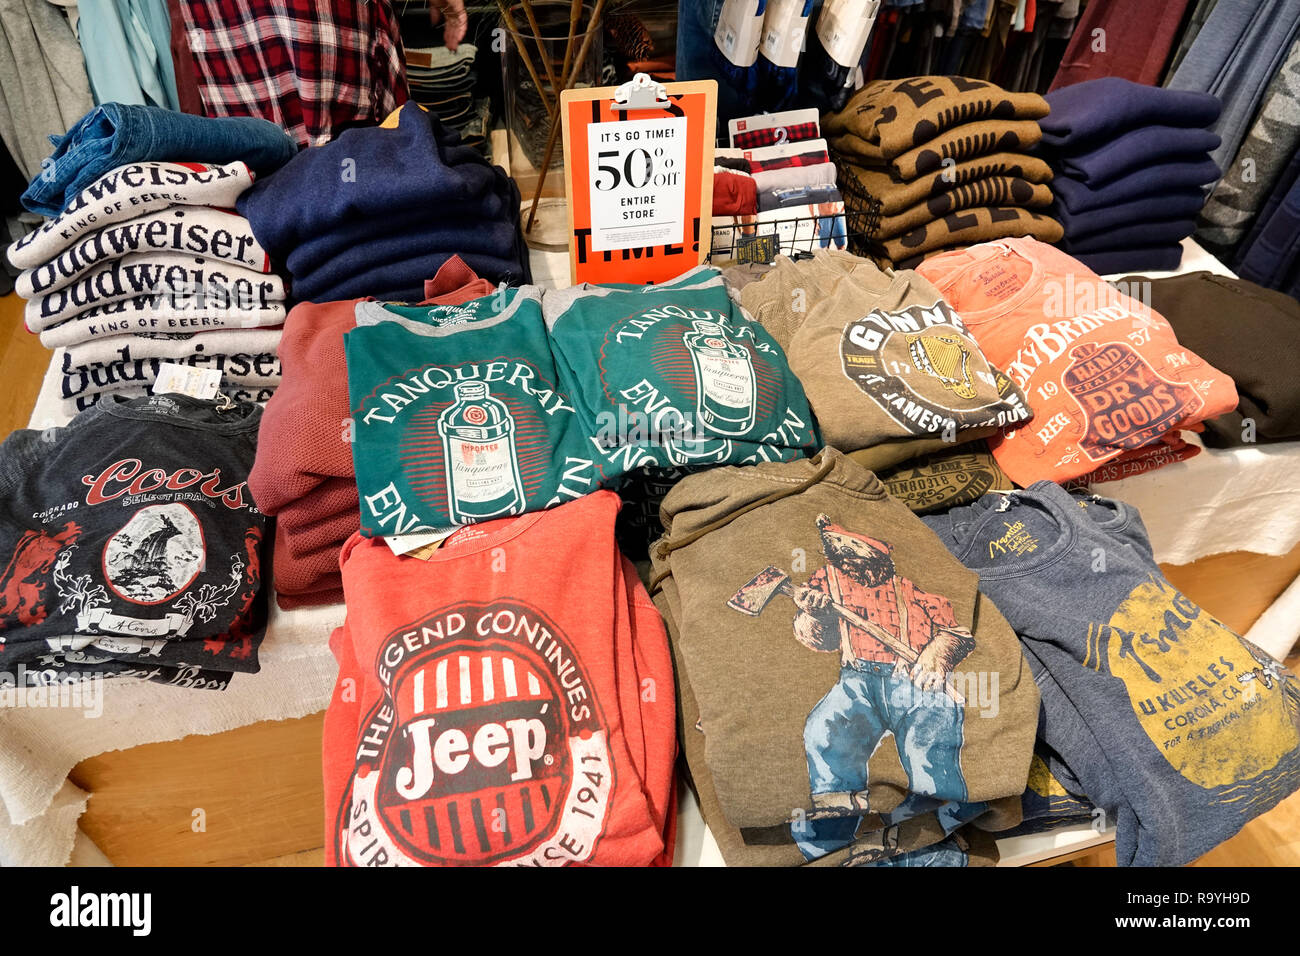 Fort Ft. Lauderdale Florida Pembroke Pines Shops At Pembroke Gardens mall shopping Lucky Brand Jeans inside tee shirts promotion 50% - Stock Image